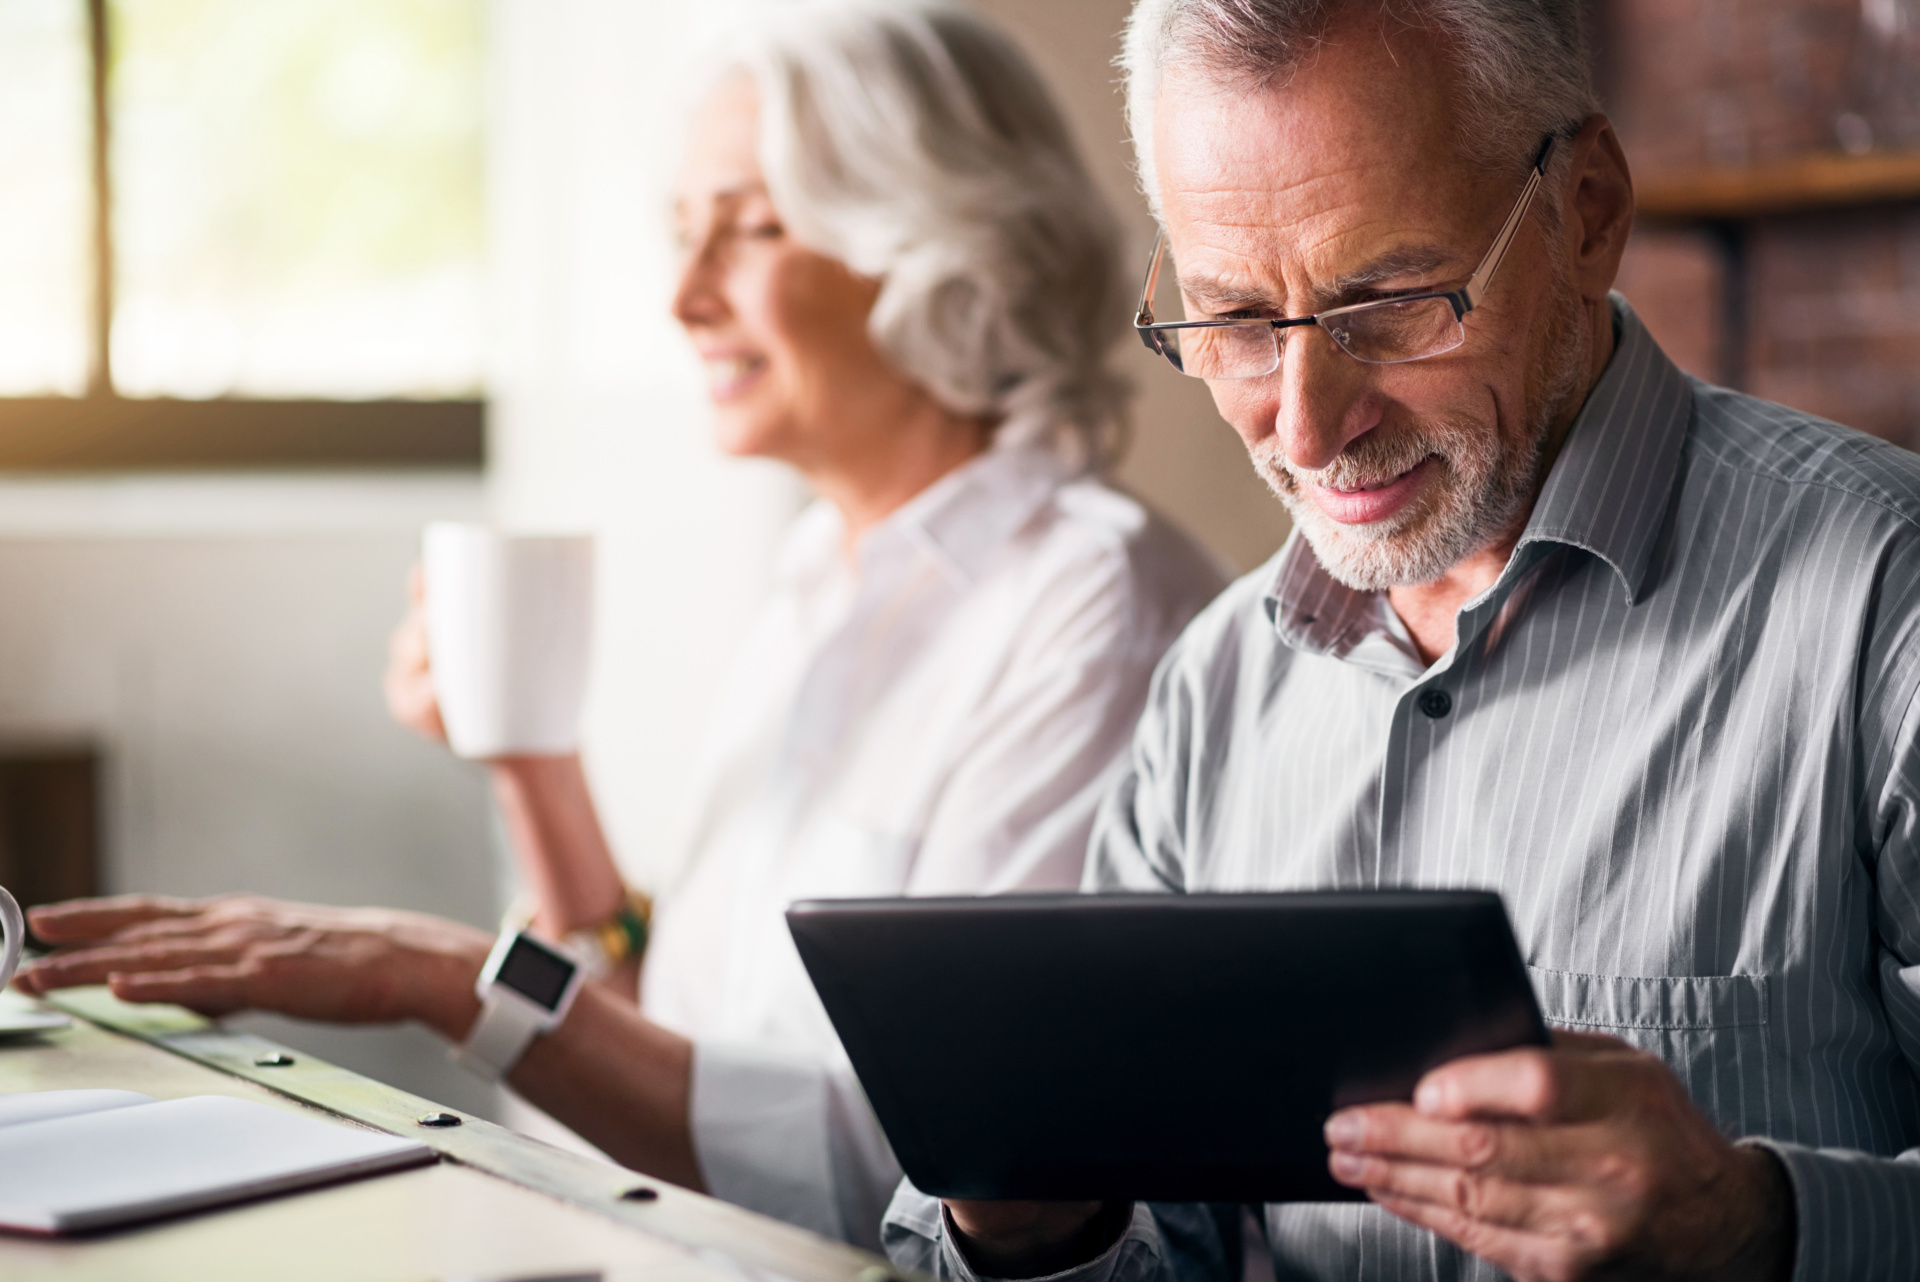 Why Arguments of Broken Retirement System Are Misguided